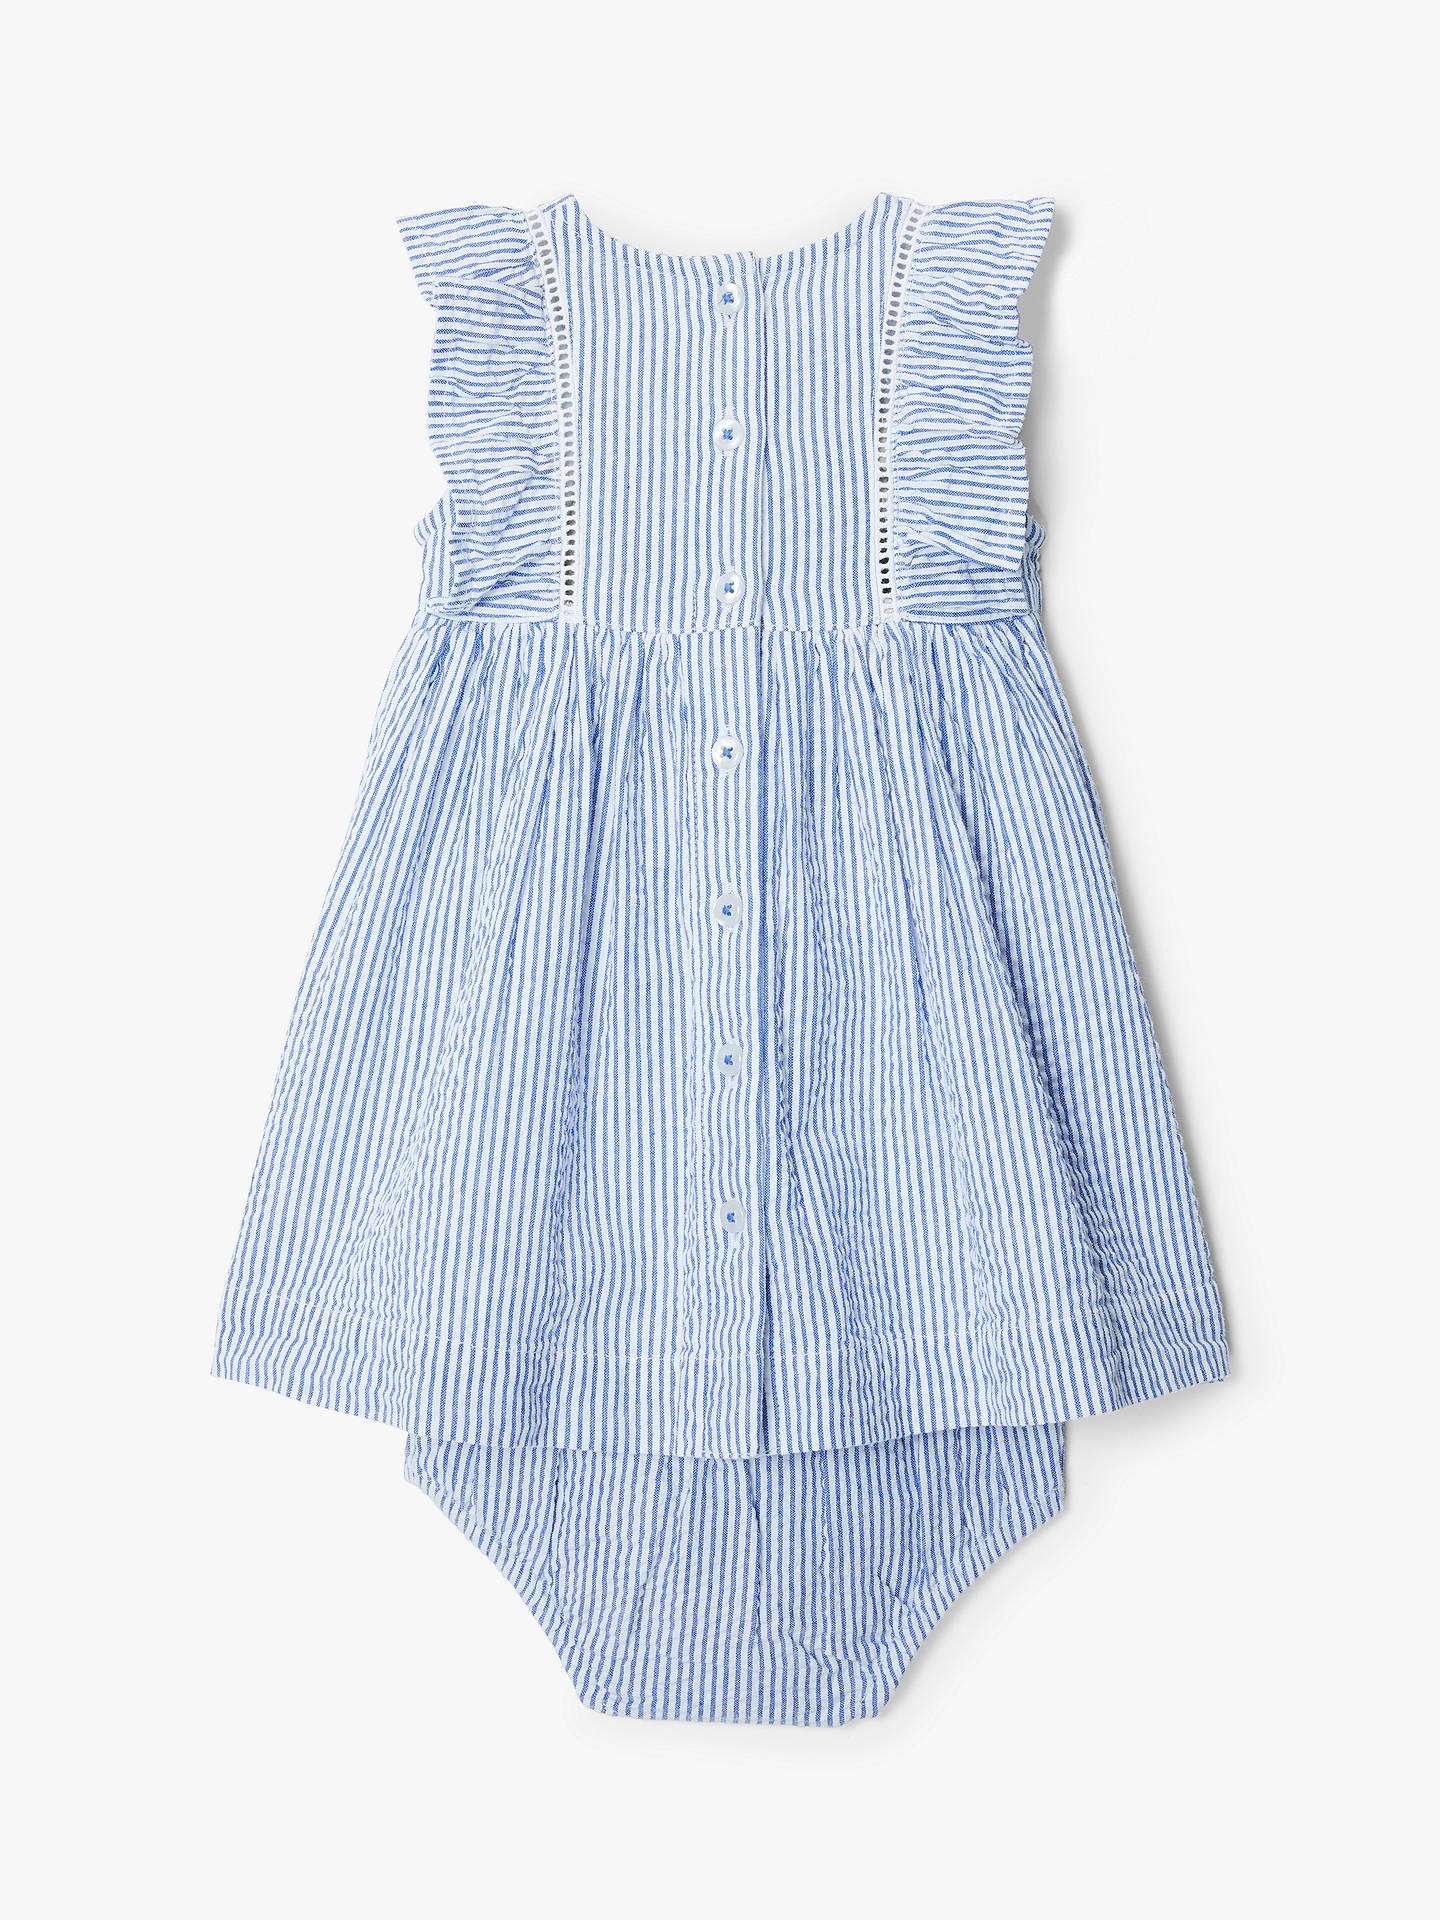 Buy John Lewis & Partners Baby Bunny Stripe Dress and Knickers Set, Blue, 18-24 months Online at johnlewis.com